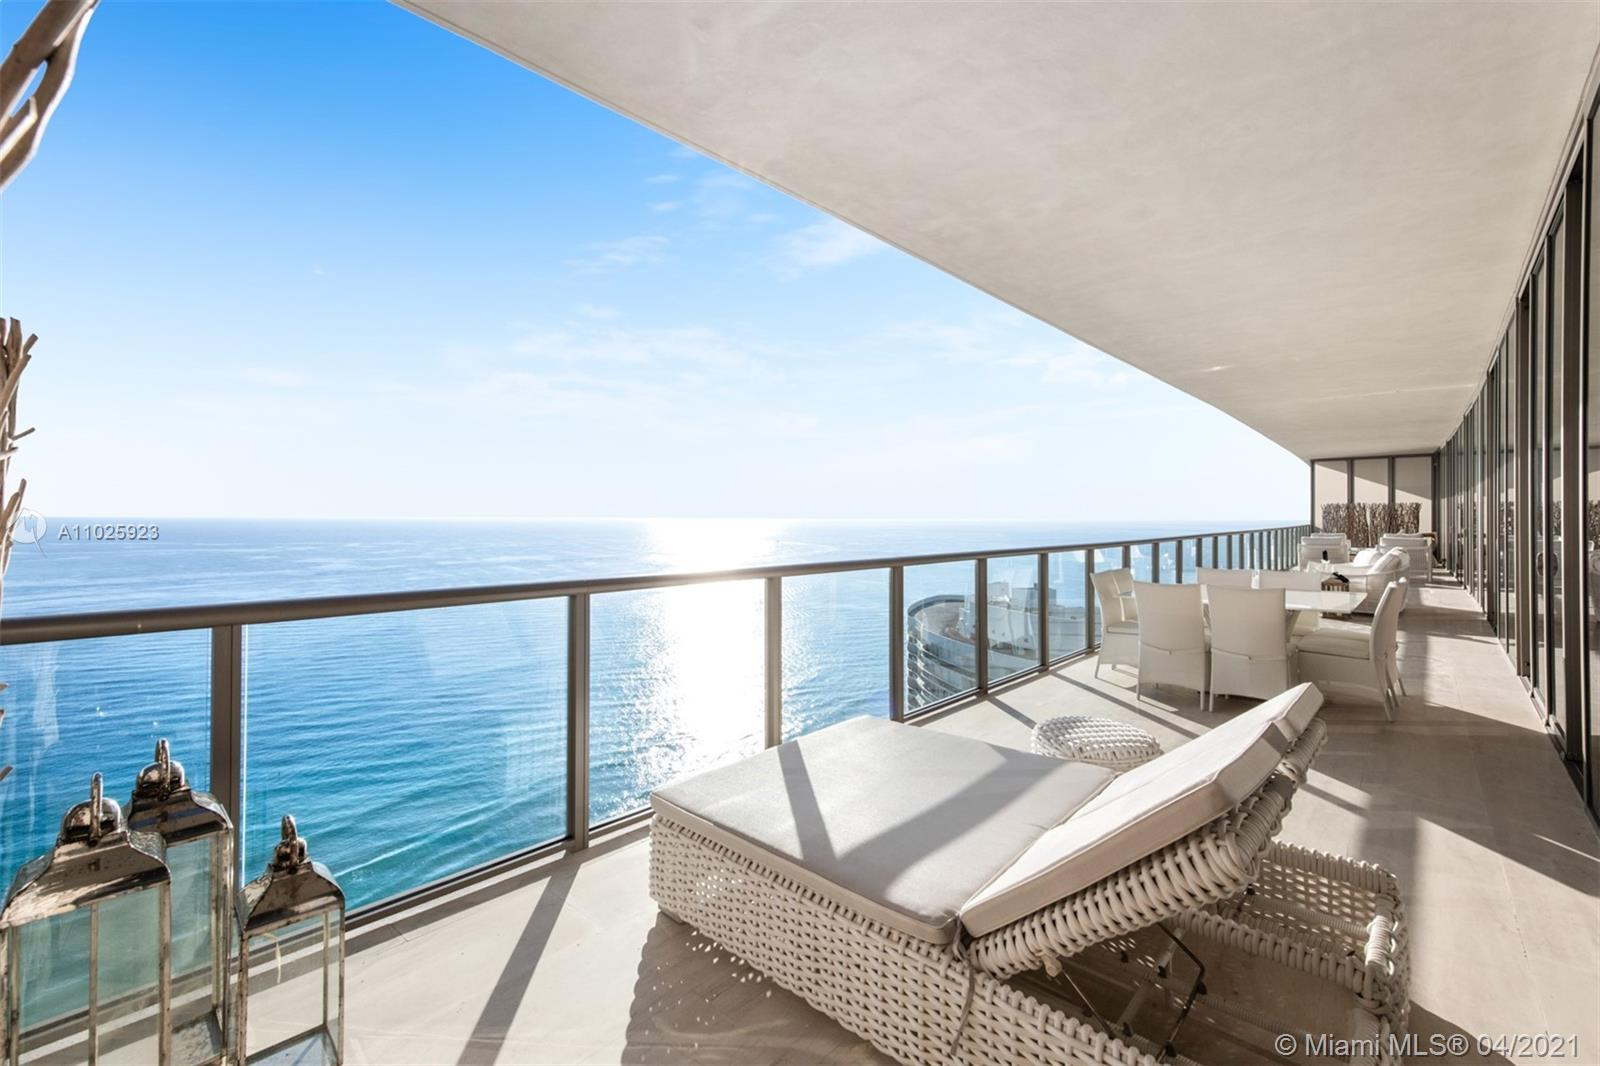 Unique opportunity to own this Penthouse Mansion on the sky at the St. Regis Bal Harbour. Two units combined; 2702 & 2703, doubling the sq ft in the tax roll see broker remarks. Located directly on the ocean with breathtaking views of the Atlantic and across from the renowned Bal Harbour Shops. This penthouse boasts five bedroom suites with two master bedrooms, custom finishes and furnishings and nearly 100 ft of continuous balcony on the east and west sides of the unit, PH 02/03 is ideal for large families and as spectacular as the view it commands. Live above it all! see broker remarks for sq.ft.